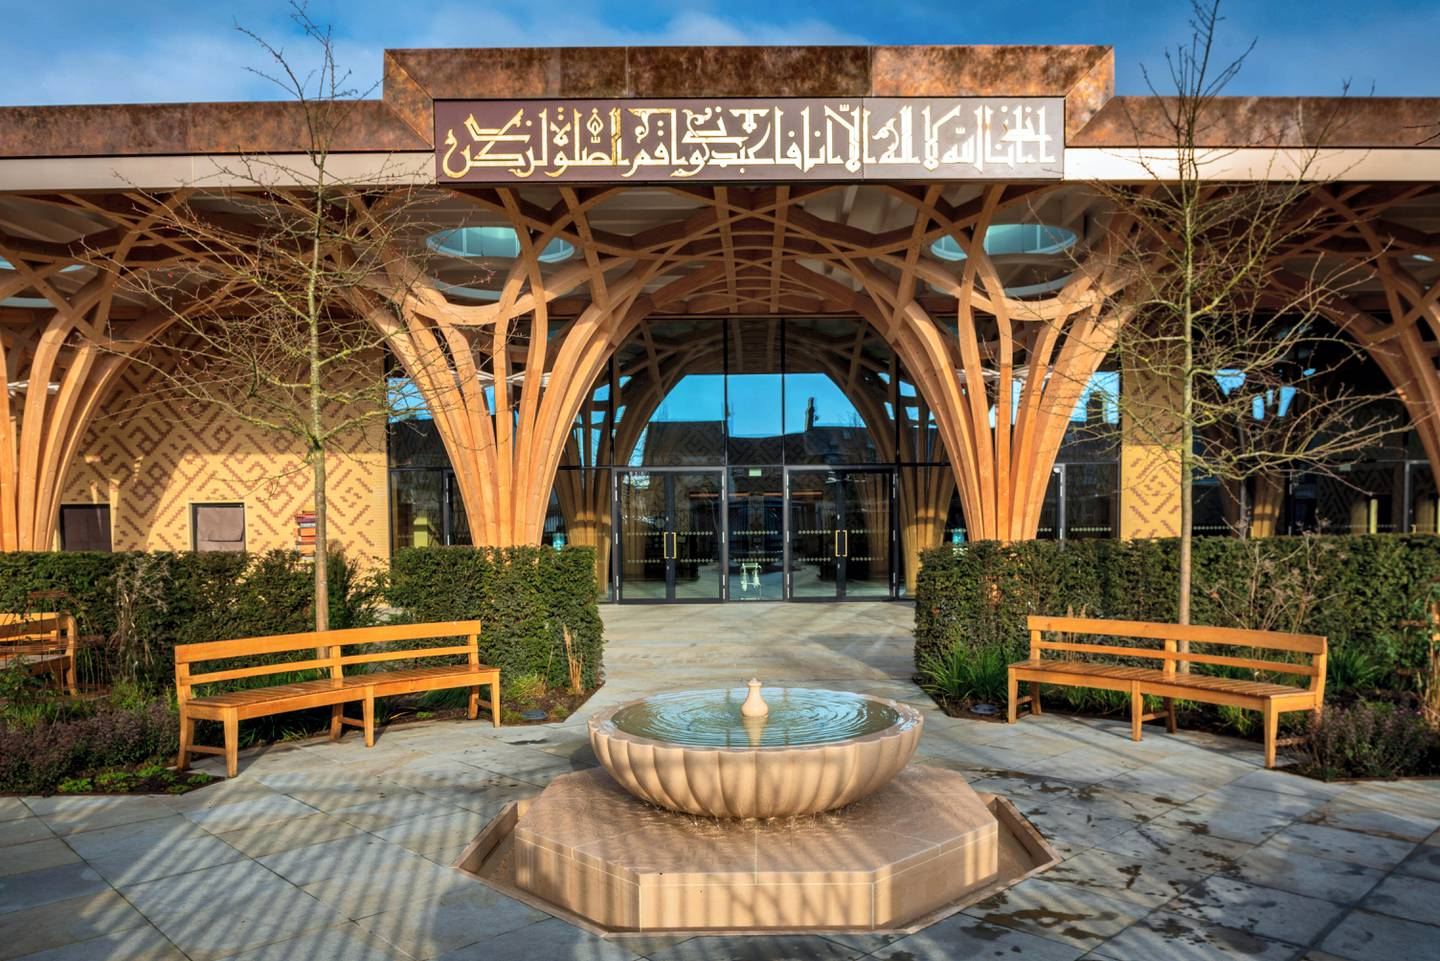 2AP6T1R Cambridge Central Mosque, Europe's first eco-friendly mosque. The first purpose-built mosque in the city of Cambridge architects Marks Barfield 2019.